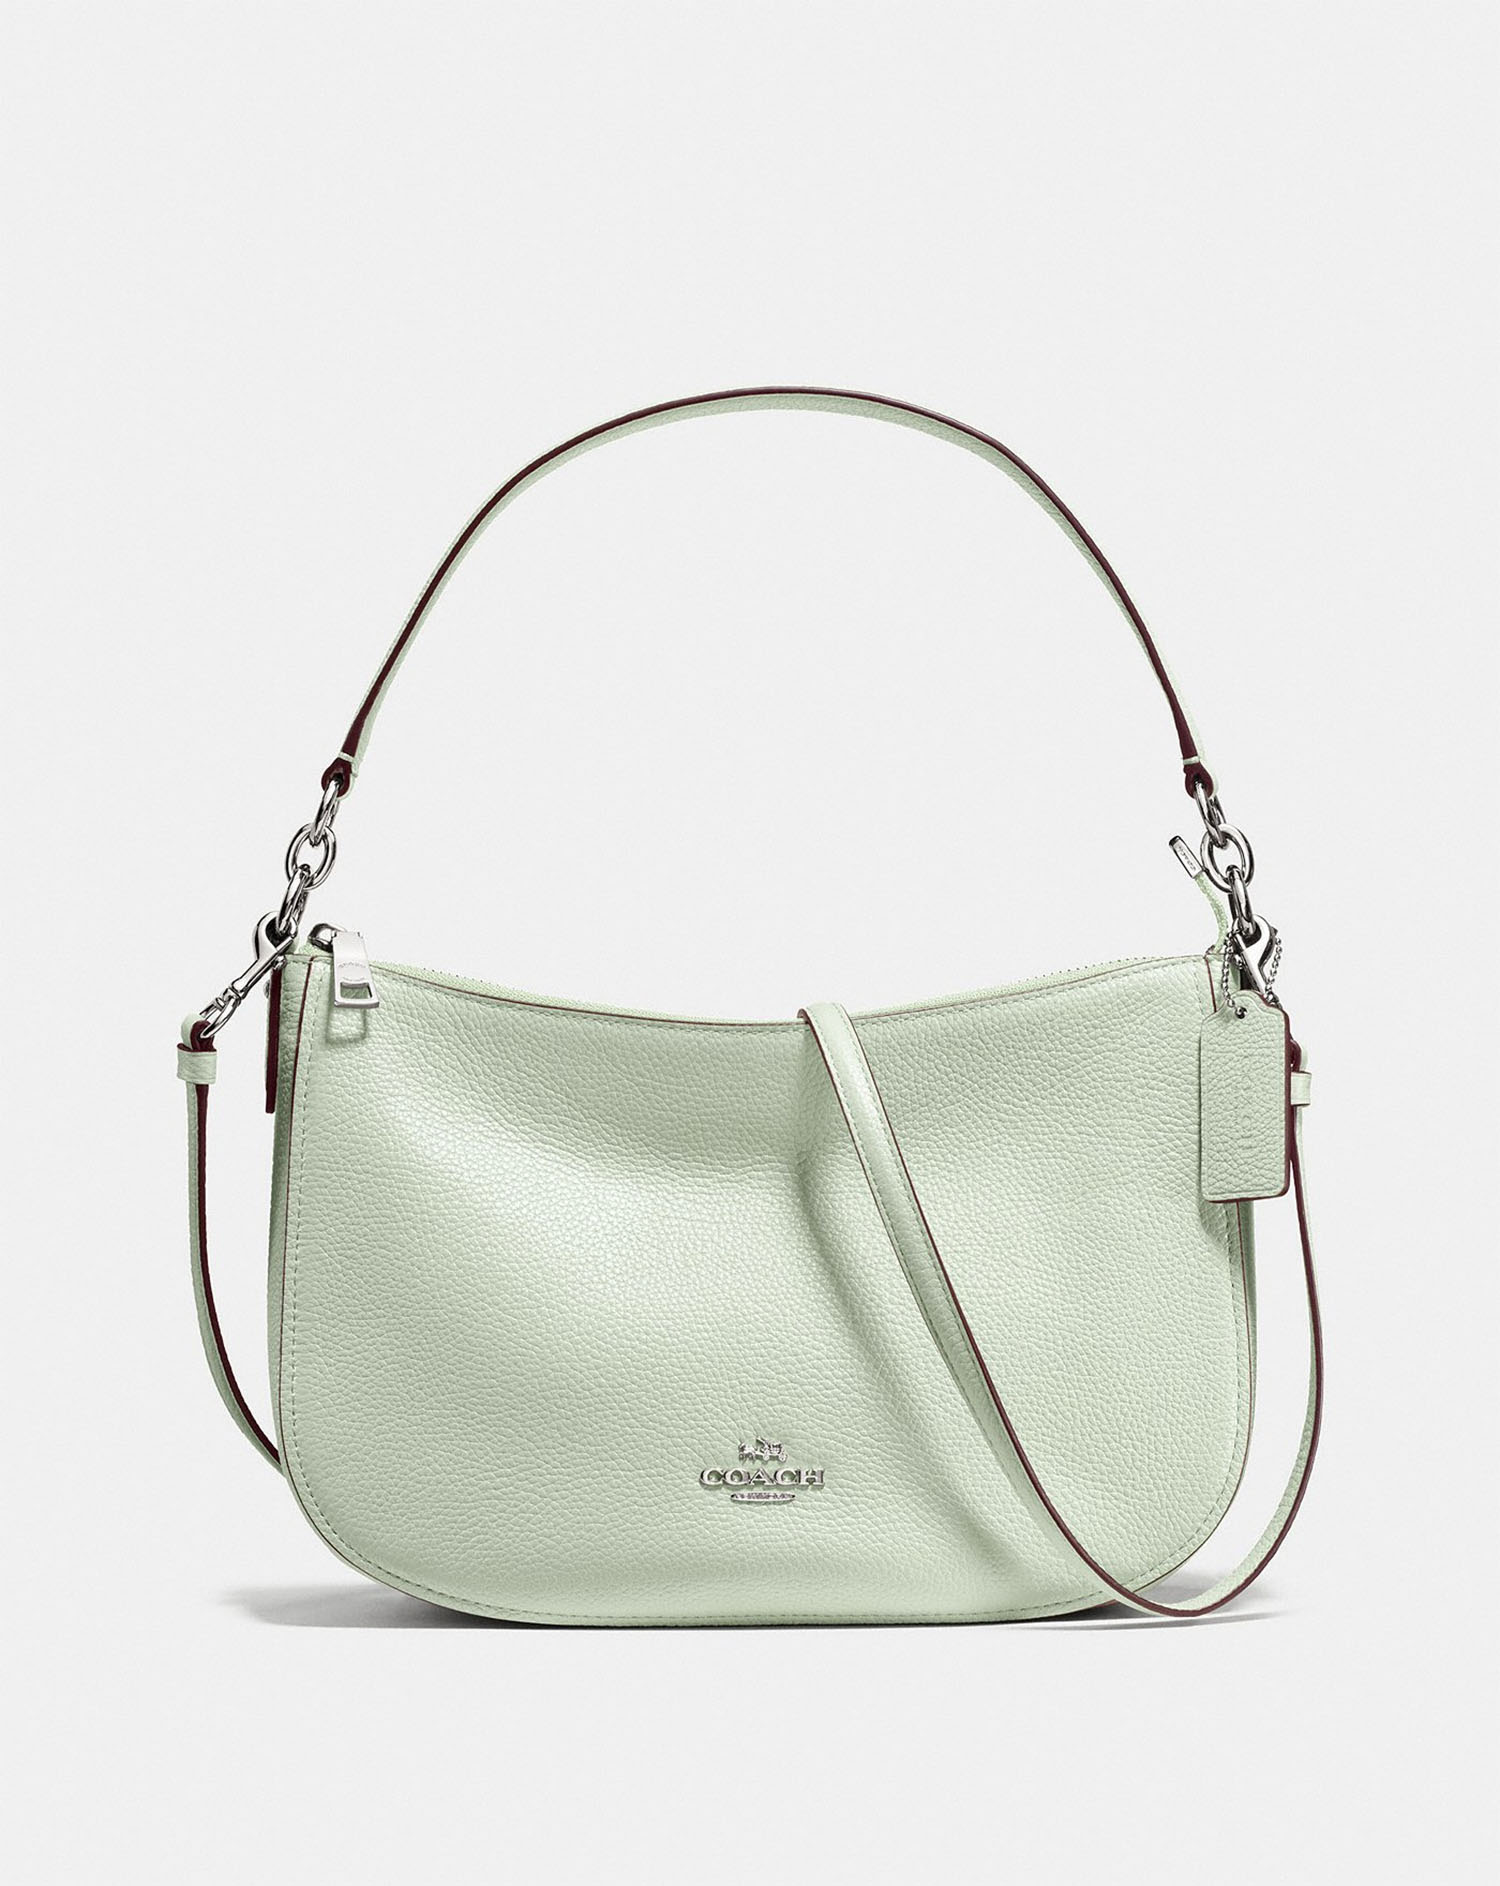 c7021b610b 5 Bags We re Obsessed With From Coach s Giant 50% Off Sale